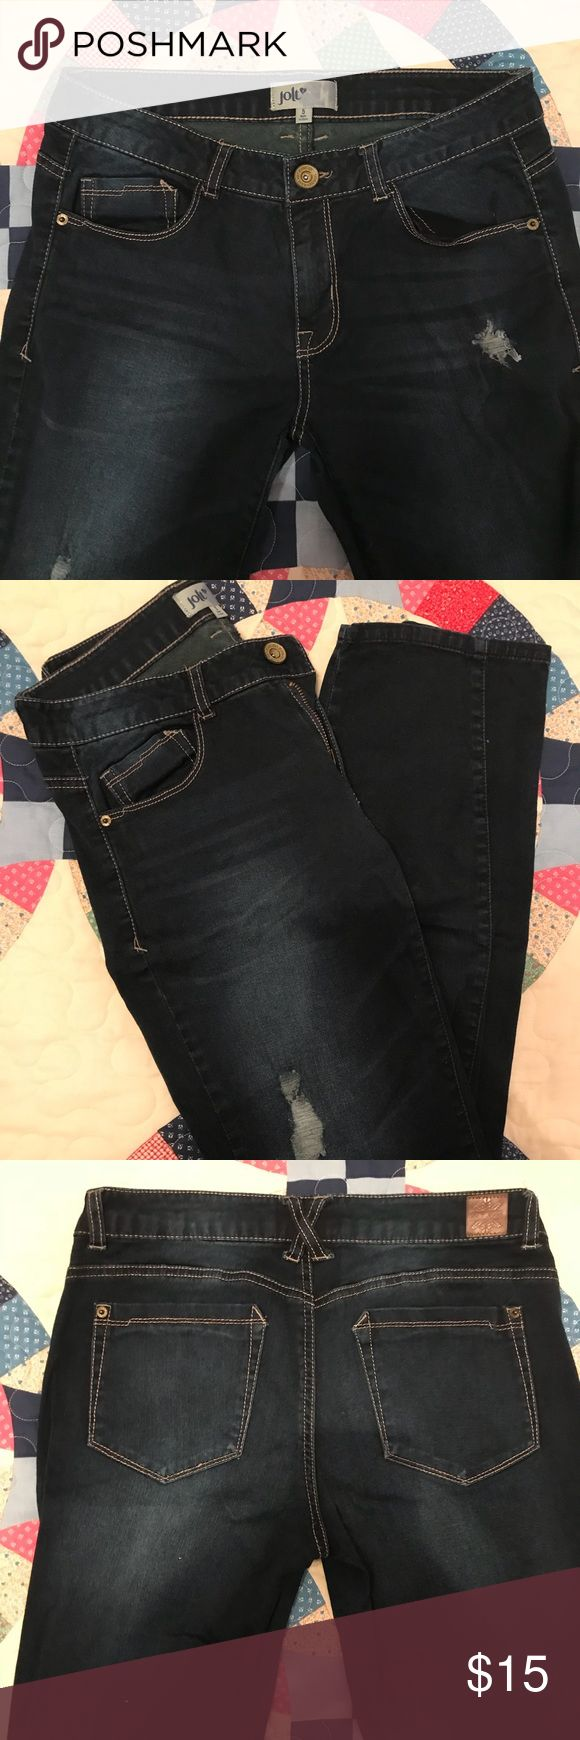 Dark Denim Jolt Jeans (SIZE 5) Classic dark denim jeans from Jolt. These are size 5, not size 6 as poshmark doesn't have a woman's size 5 option. Gently used and in perfect condition! Make me an offer! Jolt Jeans Skinny